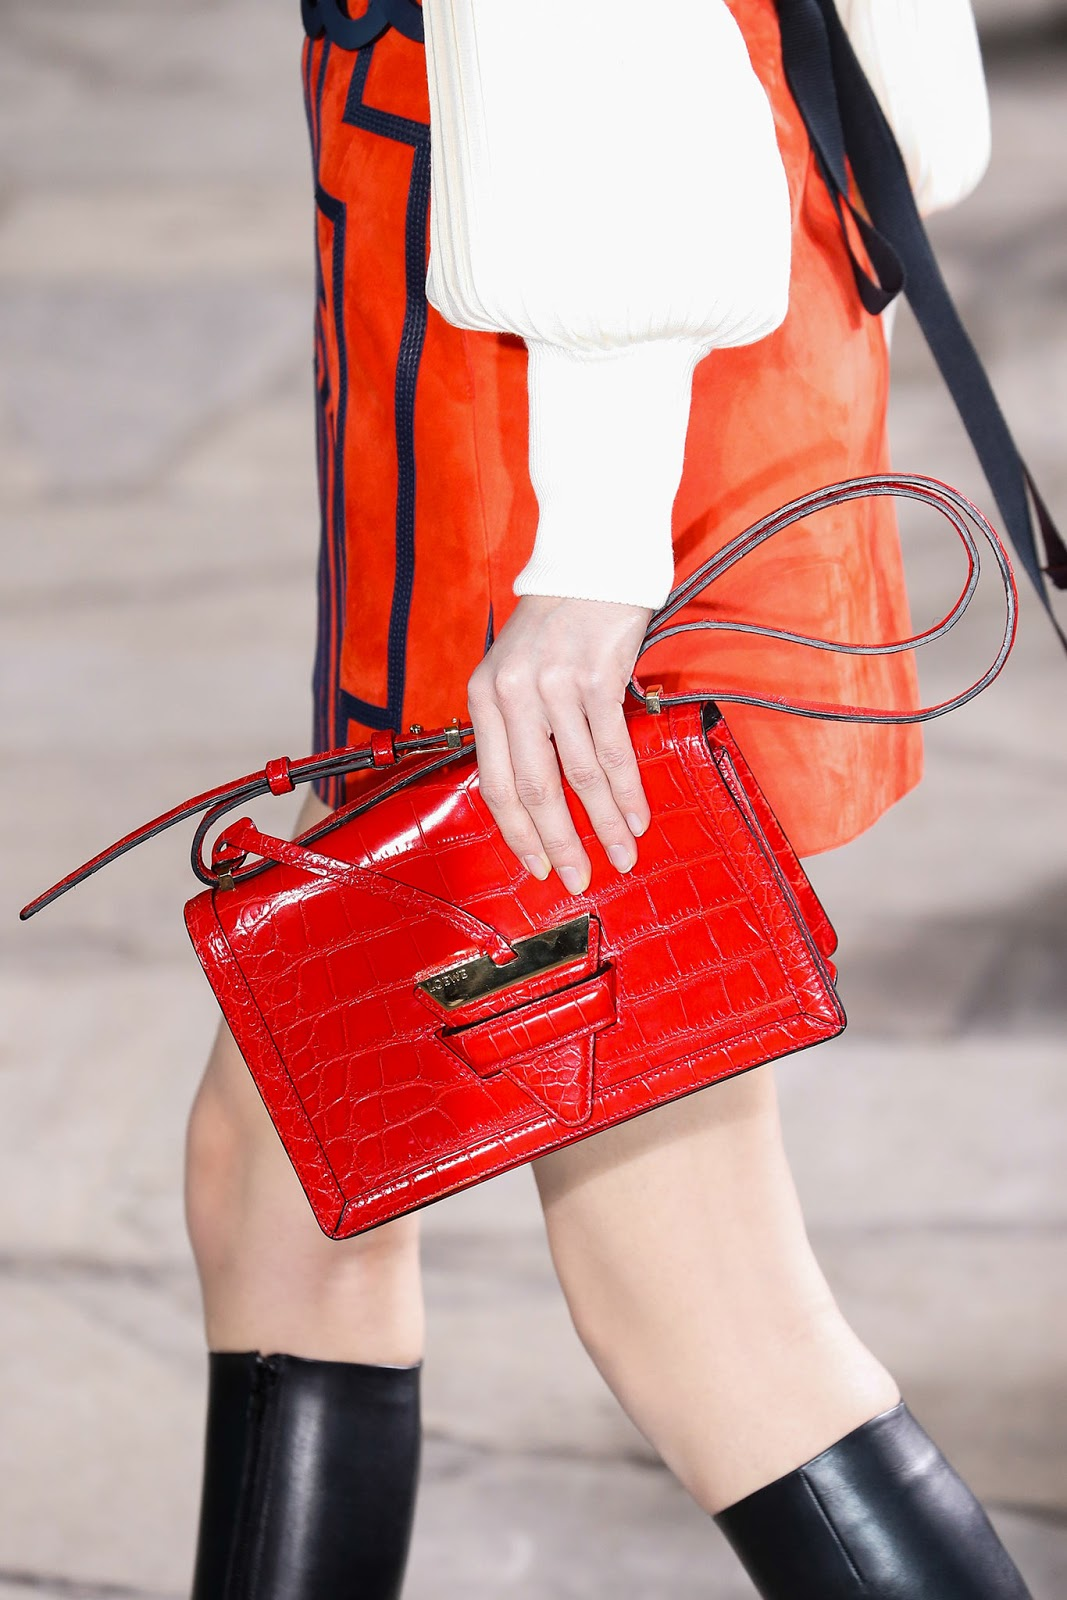 Fall 2015 accessories trend report / best bags / investment bags / crocodile accessories trend at Loewe Fall/Winter 2015 via fashionedbylove.co.uk, british fashion blog